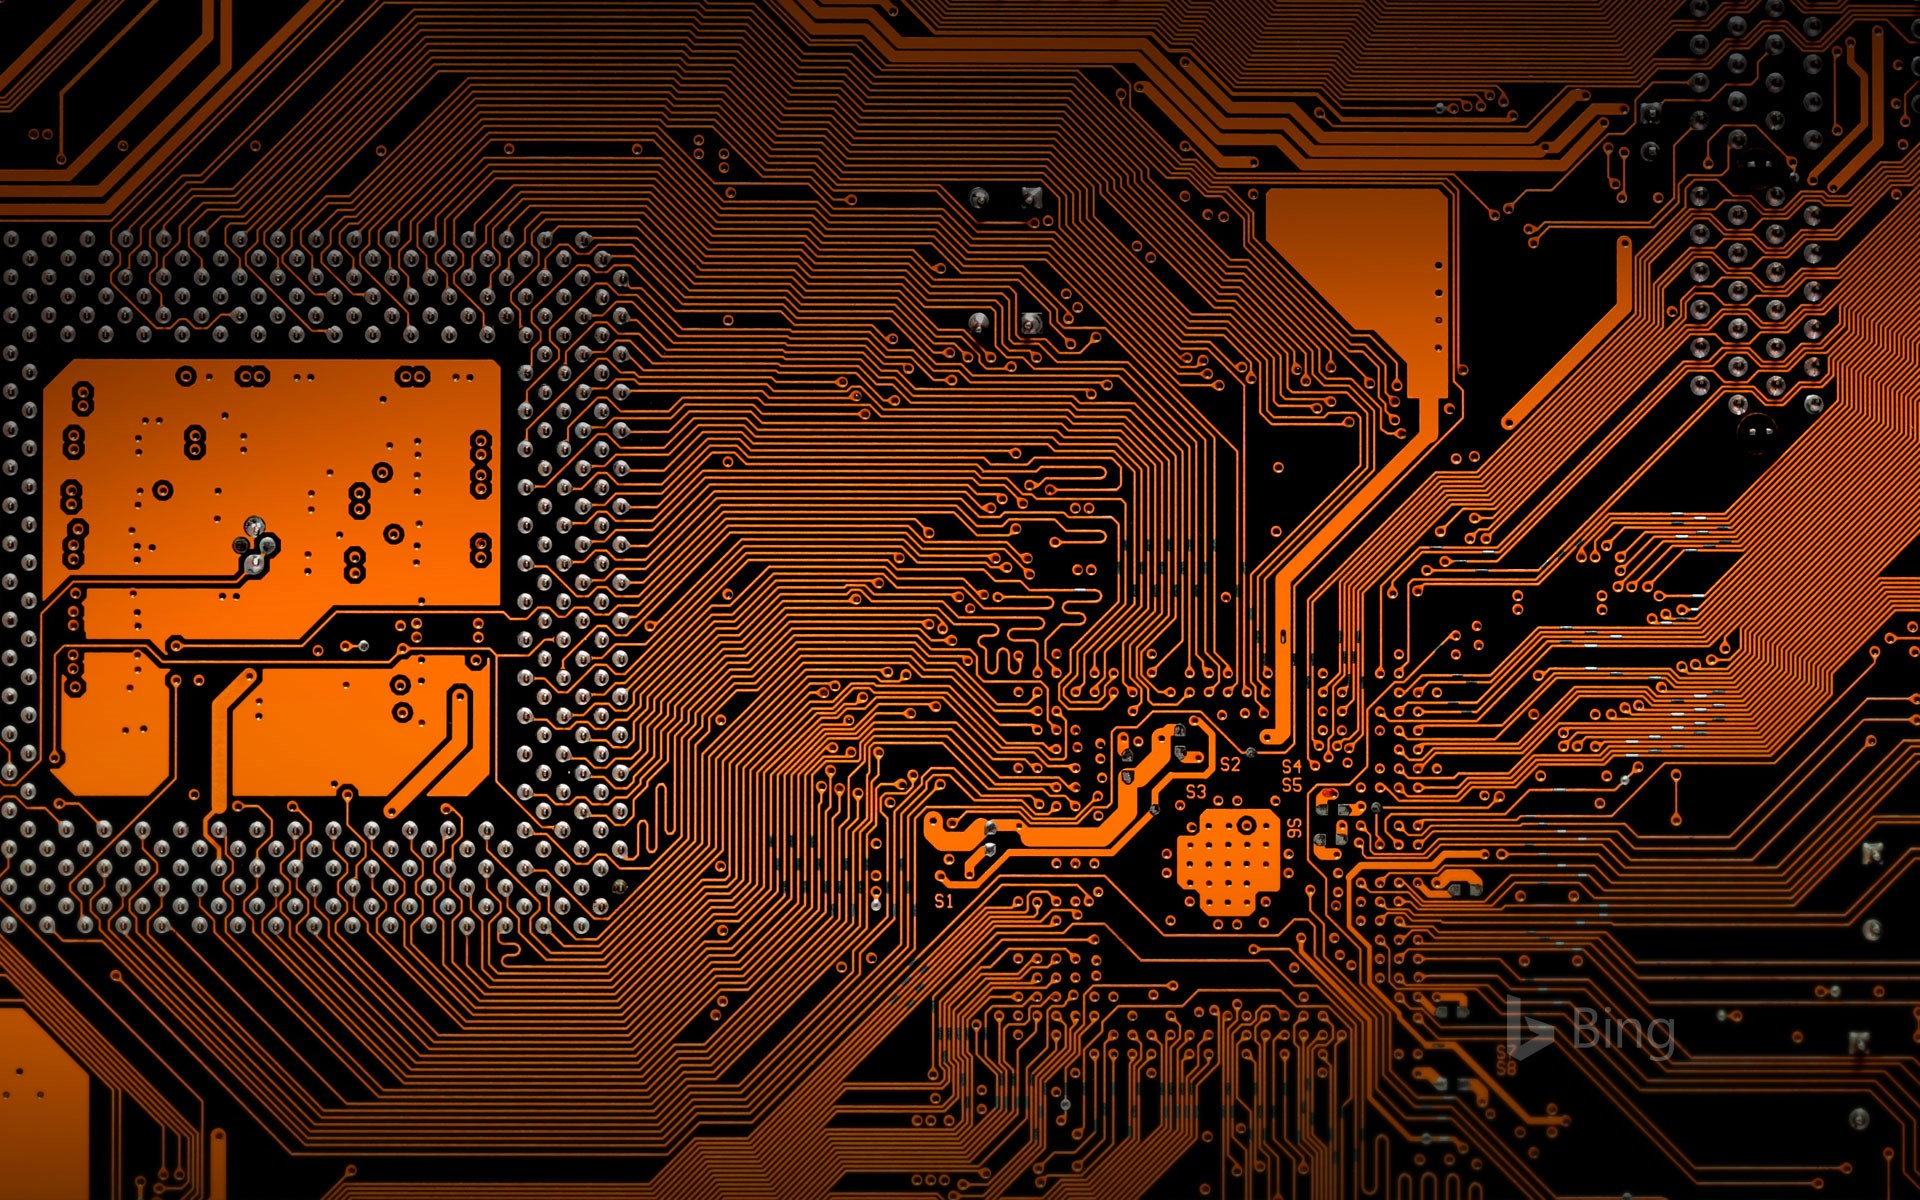 Motherboard of a computer